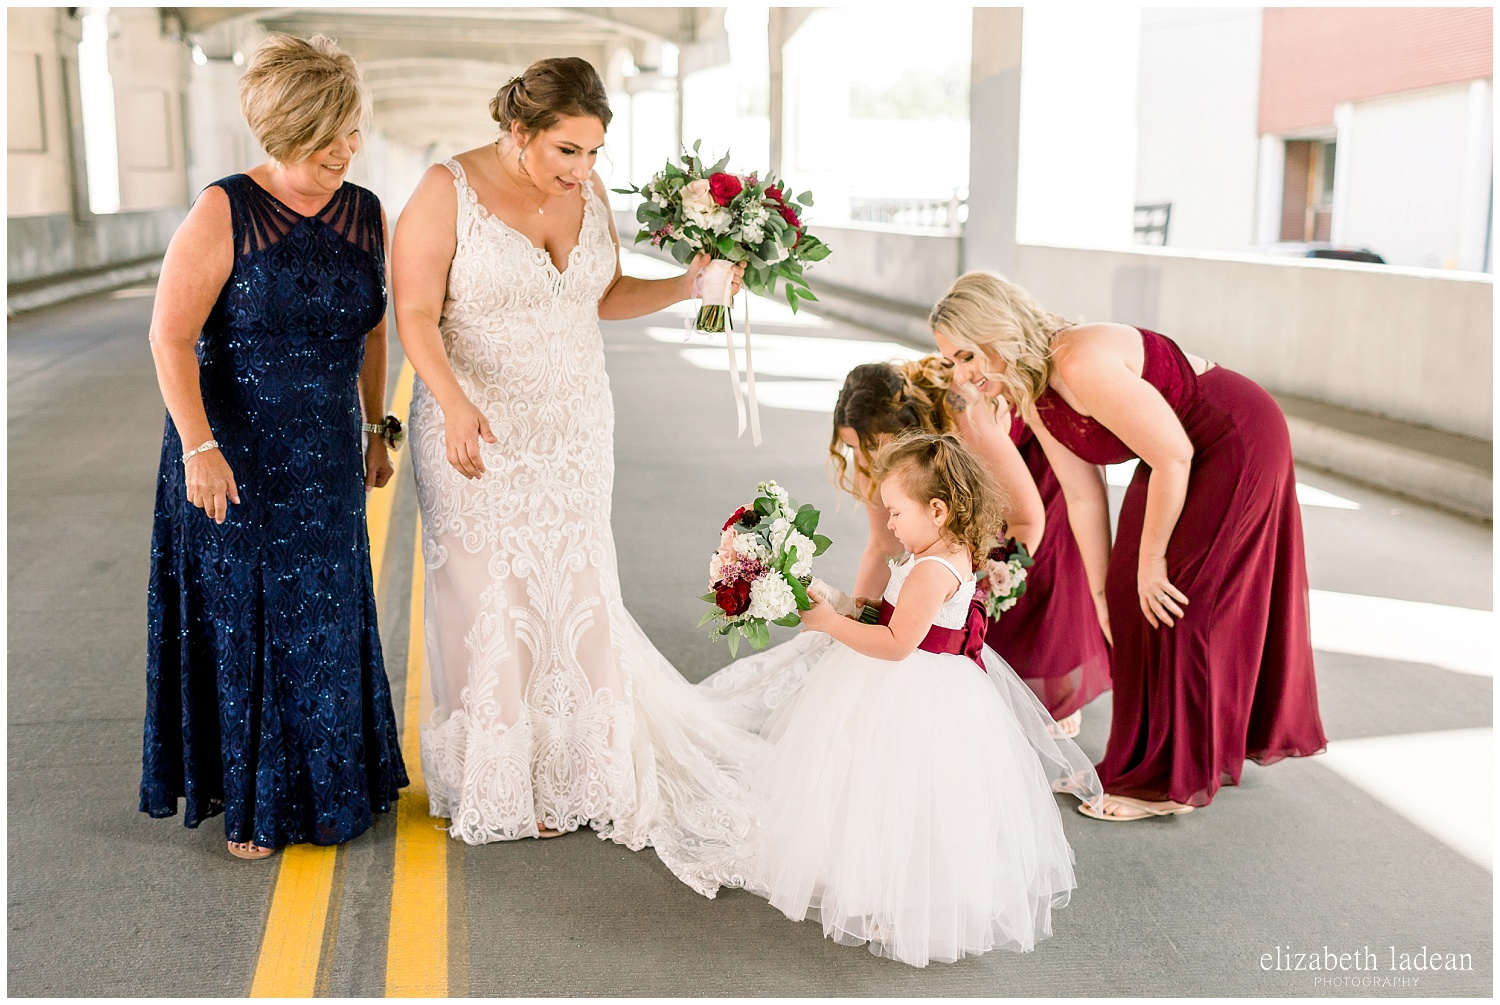 -behind-the-scenes-of-a-wedding-photographer-2018-elizabeth-ladean-photography-photo_3553.jpg